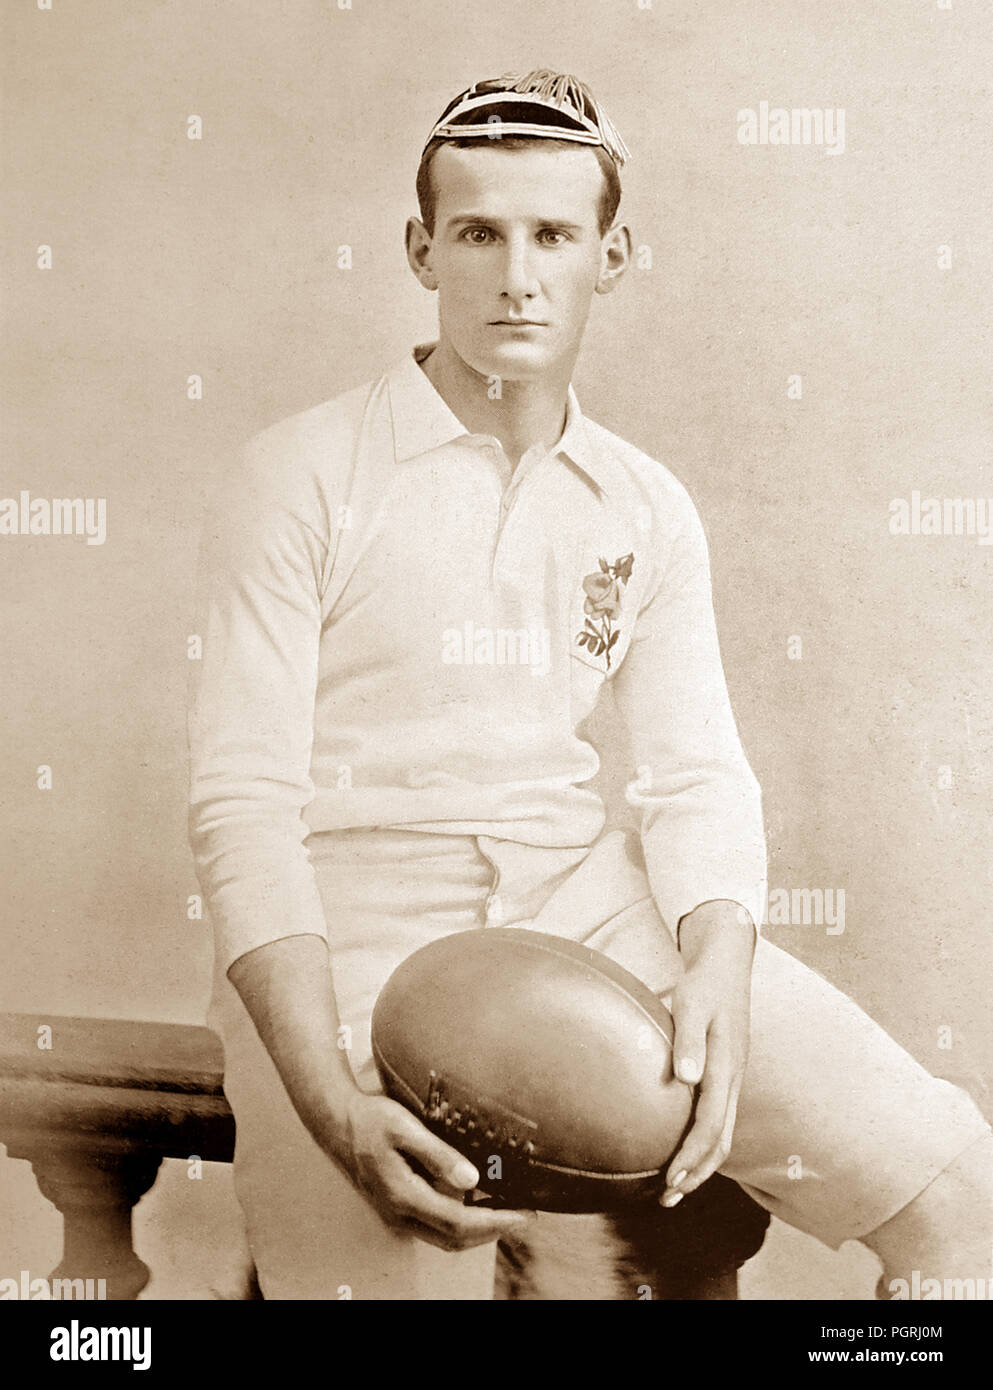 Edwin Field, rugby player, Victorian period - Stock Image